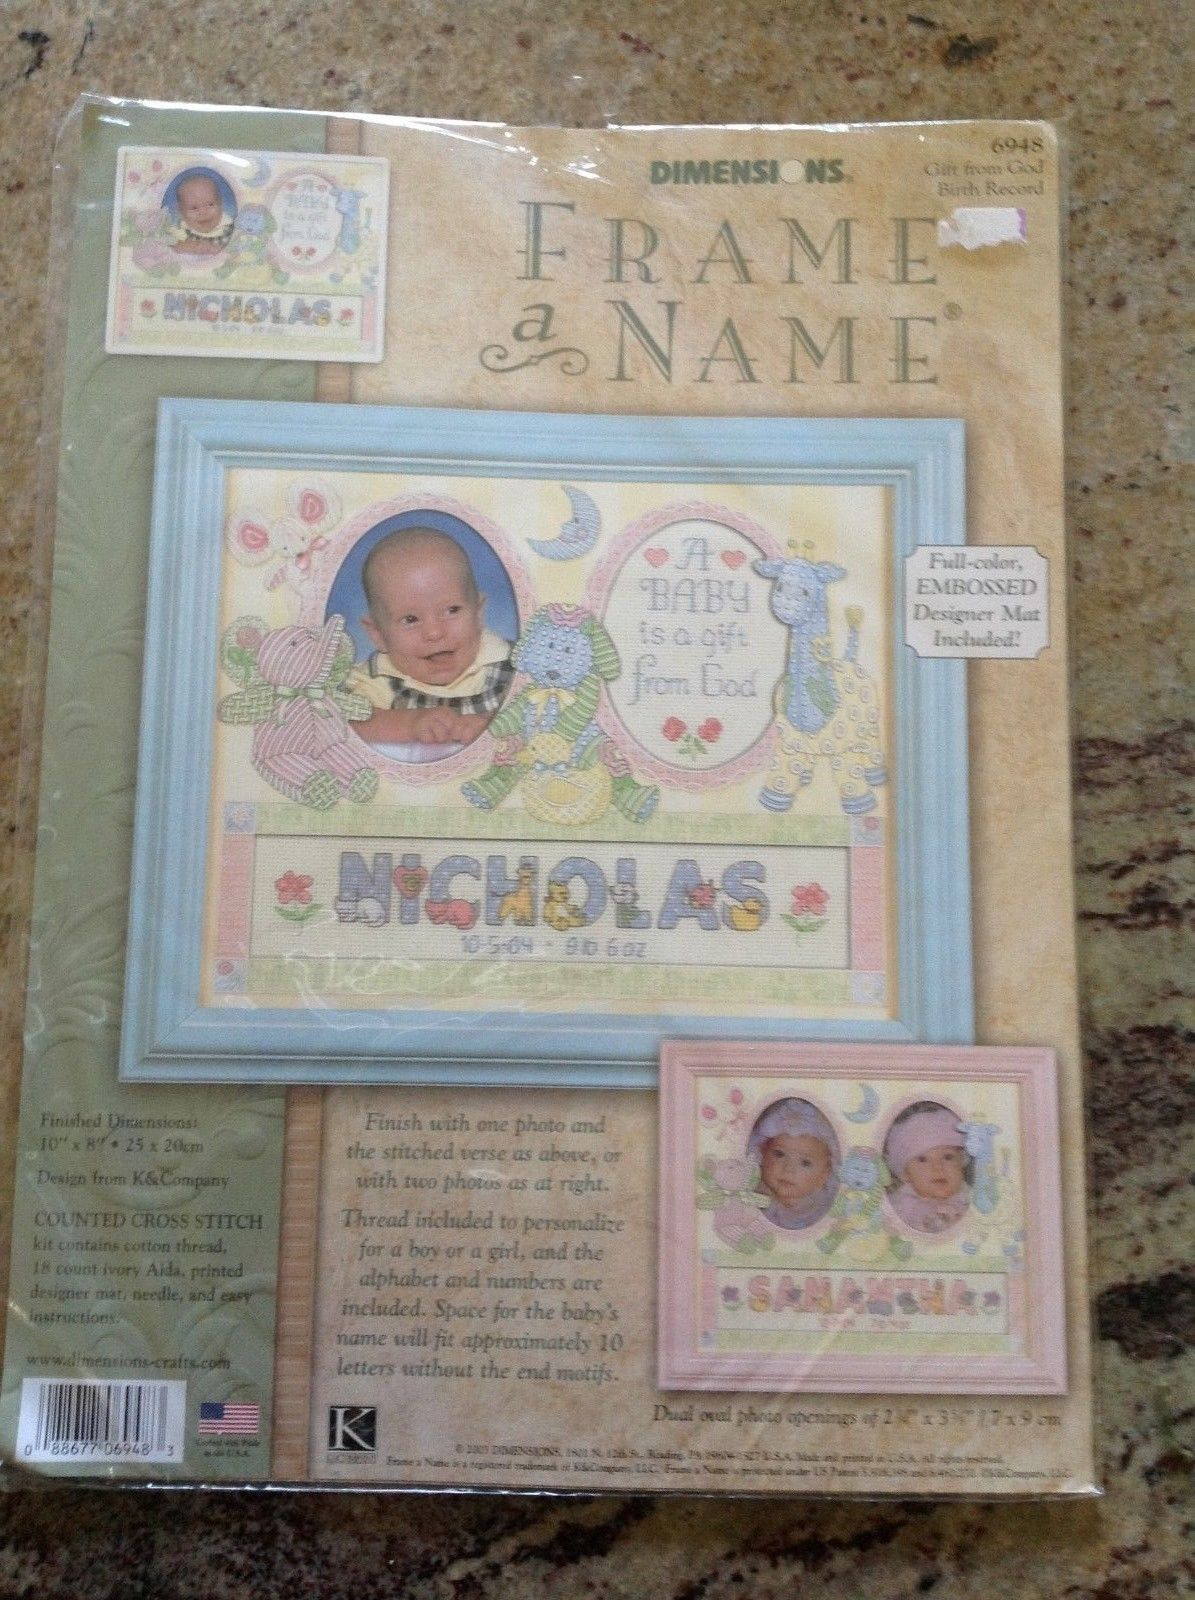 Primary image for Dimensions Counted Cross Stitch Kit Gift From God Frame a Name Birth Record